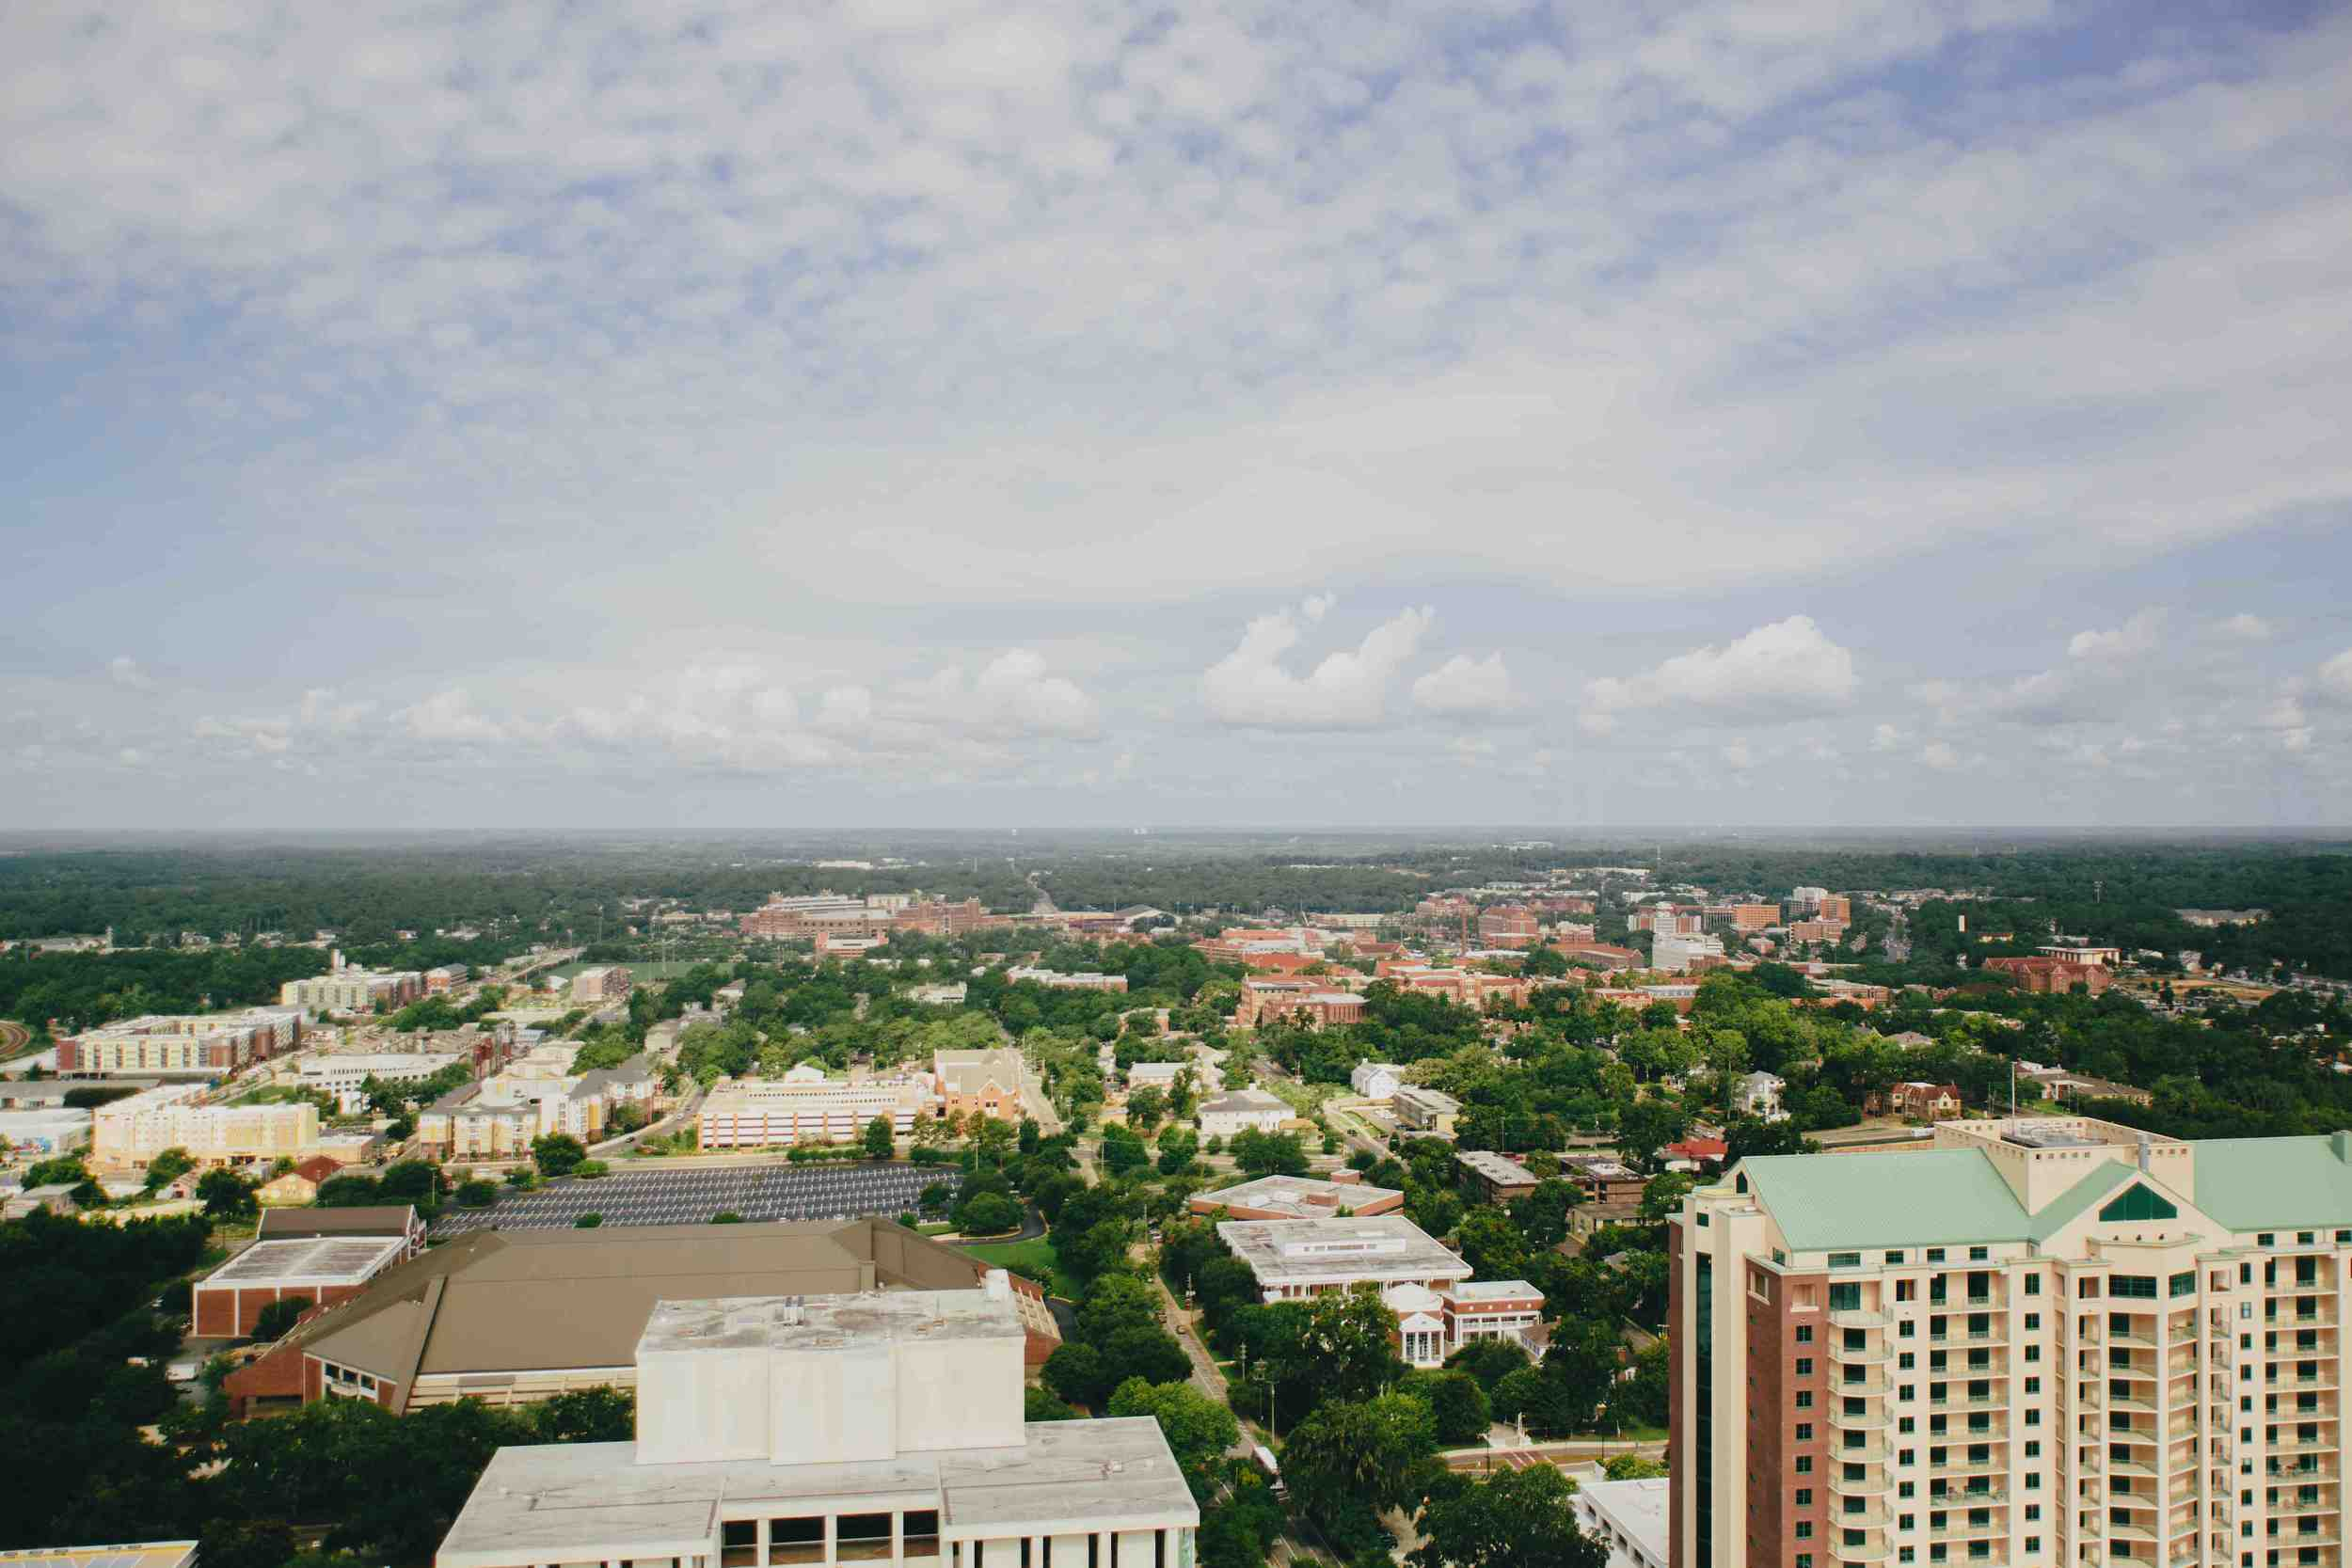 CITY VIEW OF TALLAHASSEE AND FSU CAMPUS